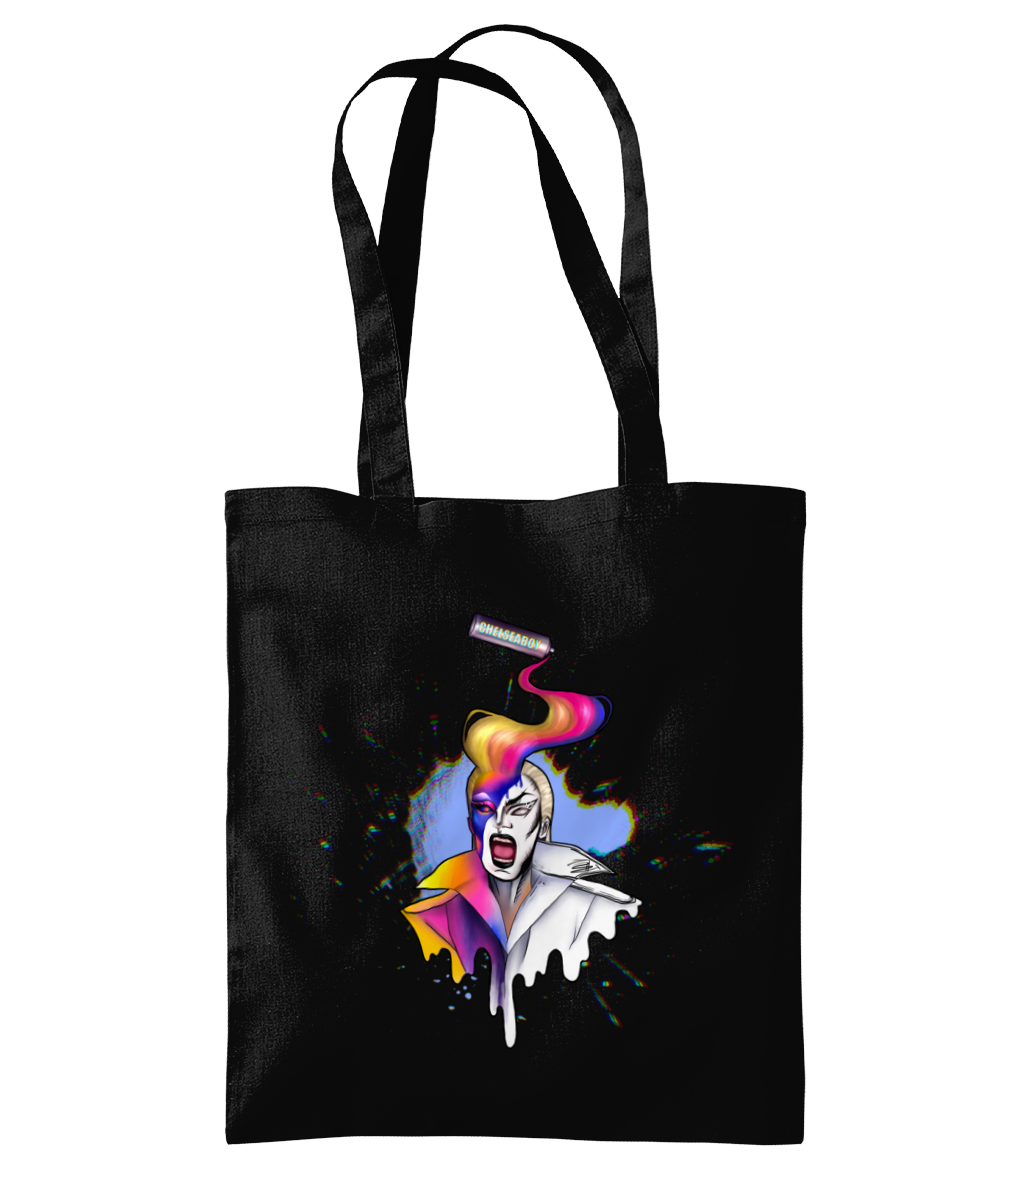 ChelseaBoy - Spray Paint Tote Bag